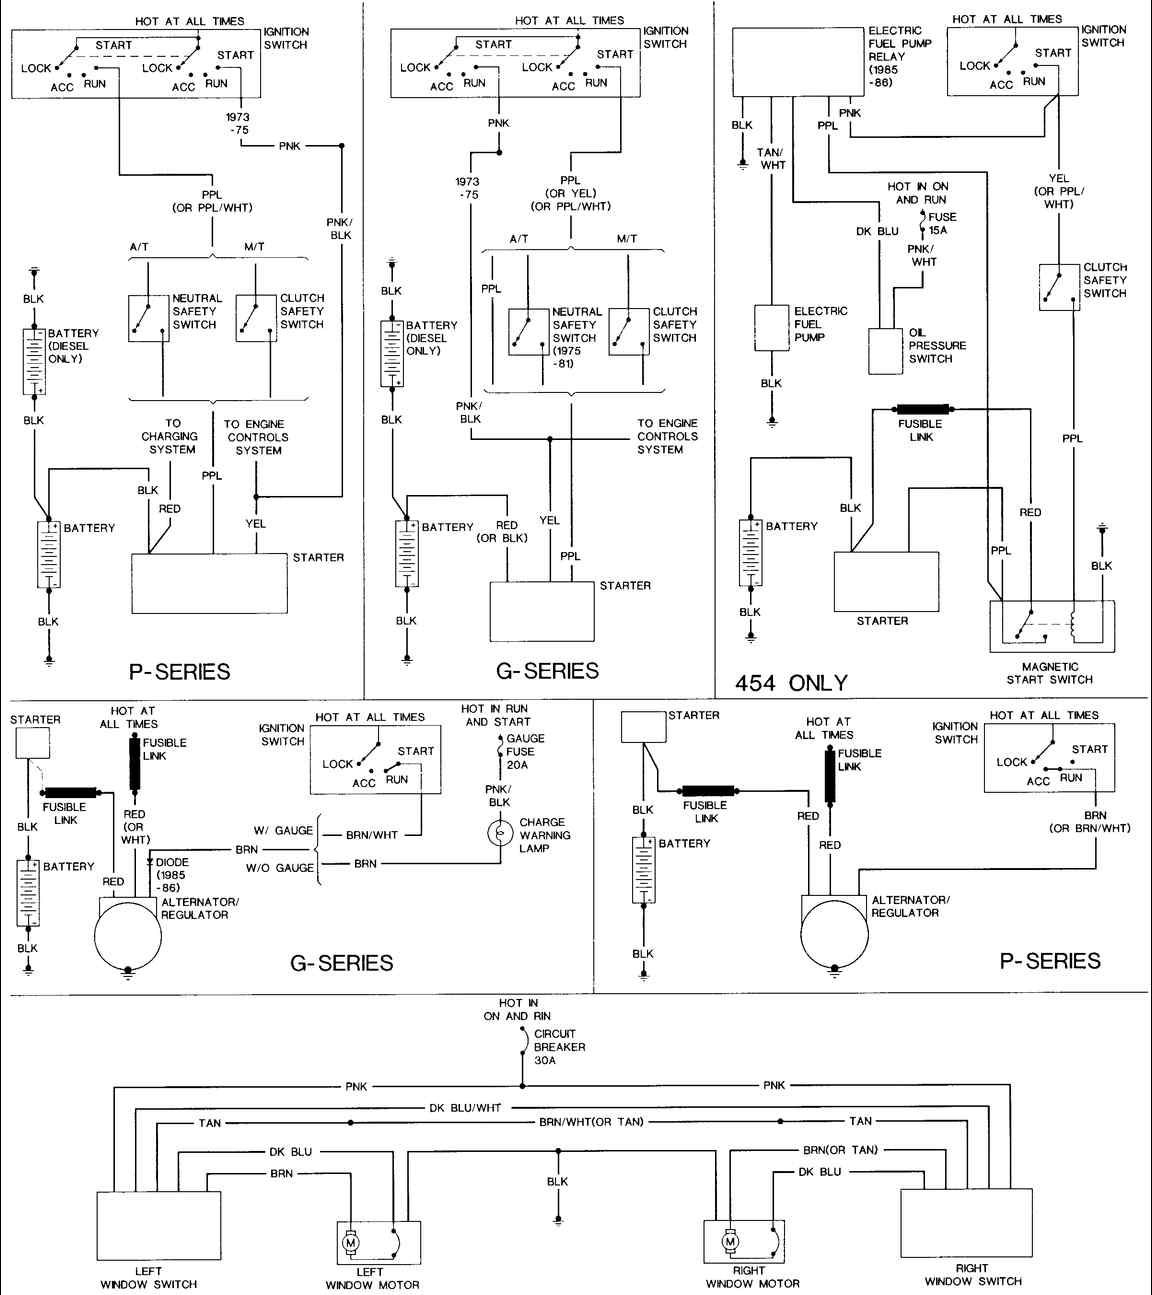 0c73623a181dc376dbb4777e2029d285 85 chevy truck wiring diagram 85 chevy van the steering column 87 chevy r10 wiring diagram at gsmx.co